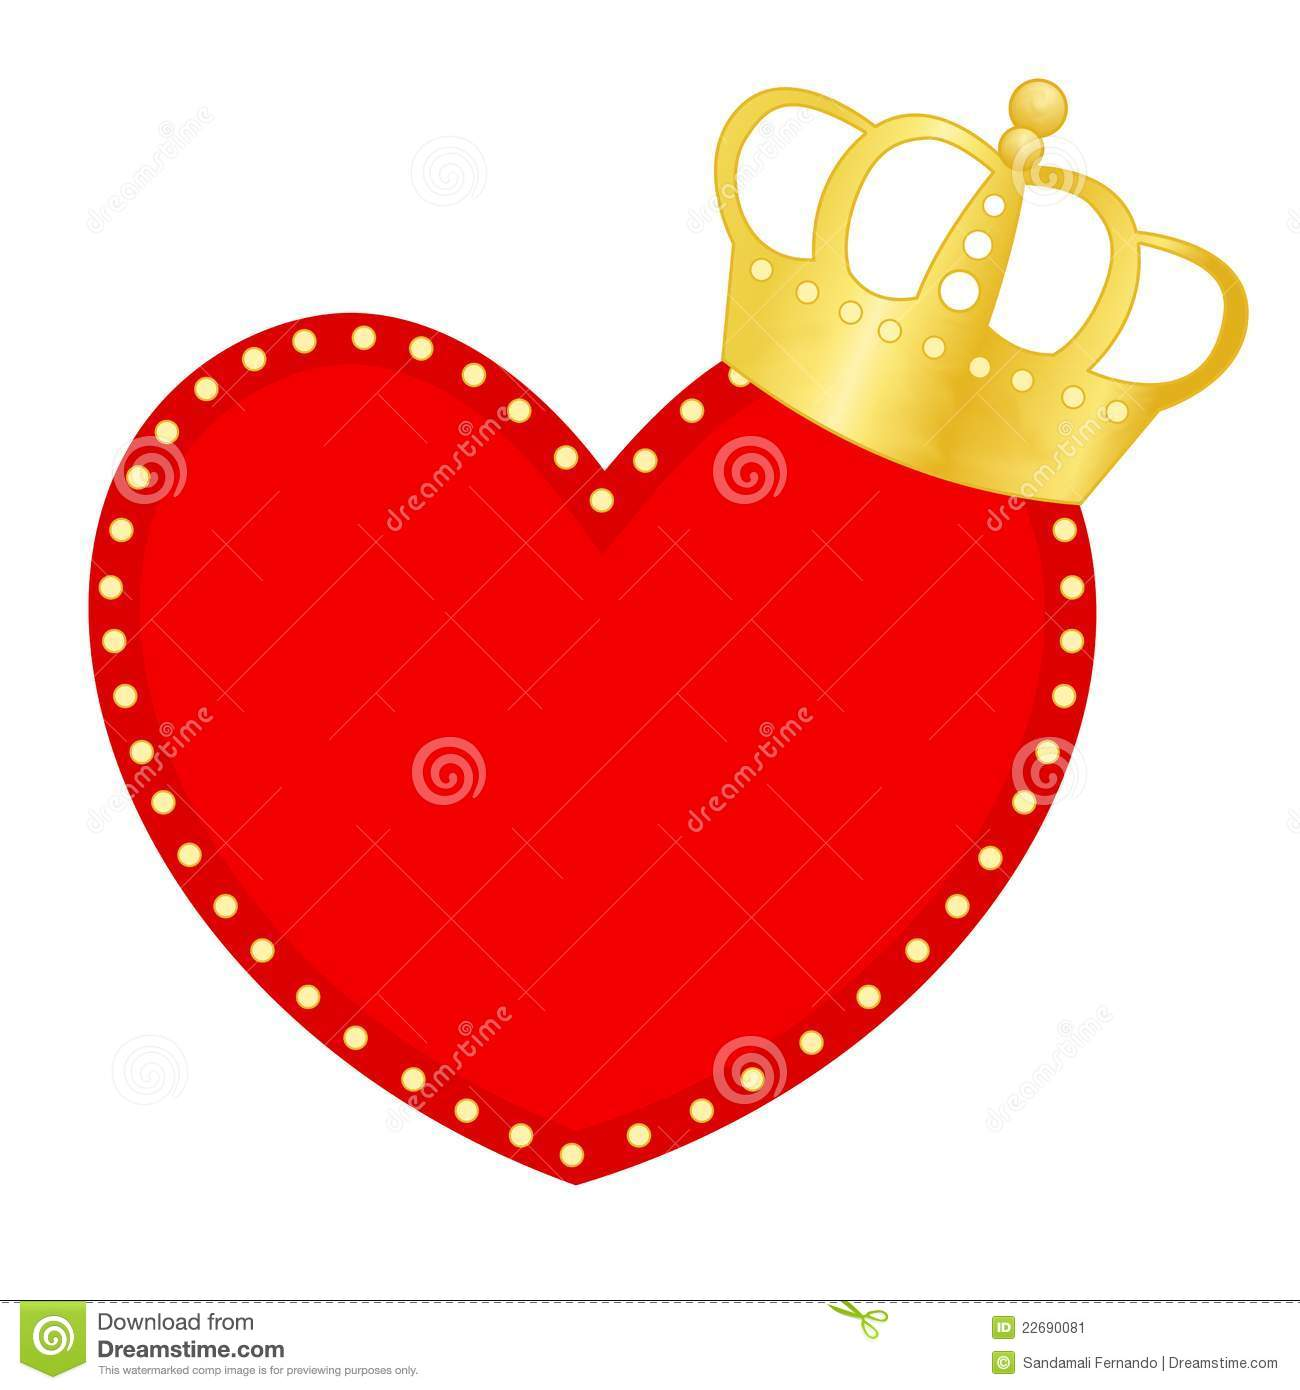 More similar stock images of ` Heart and crown `